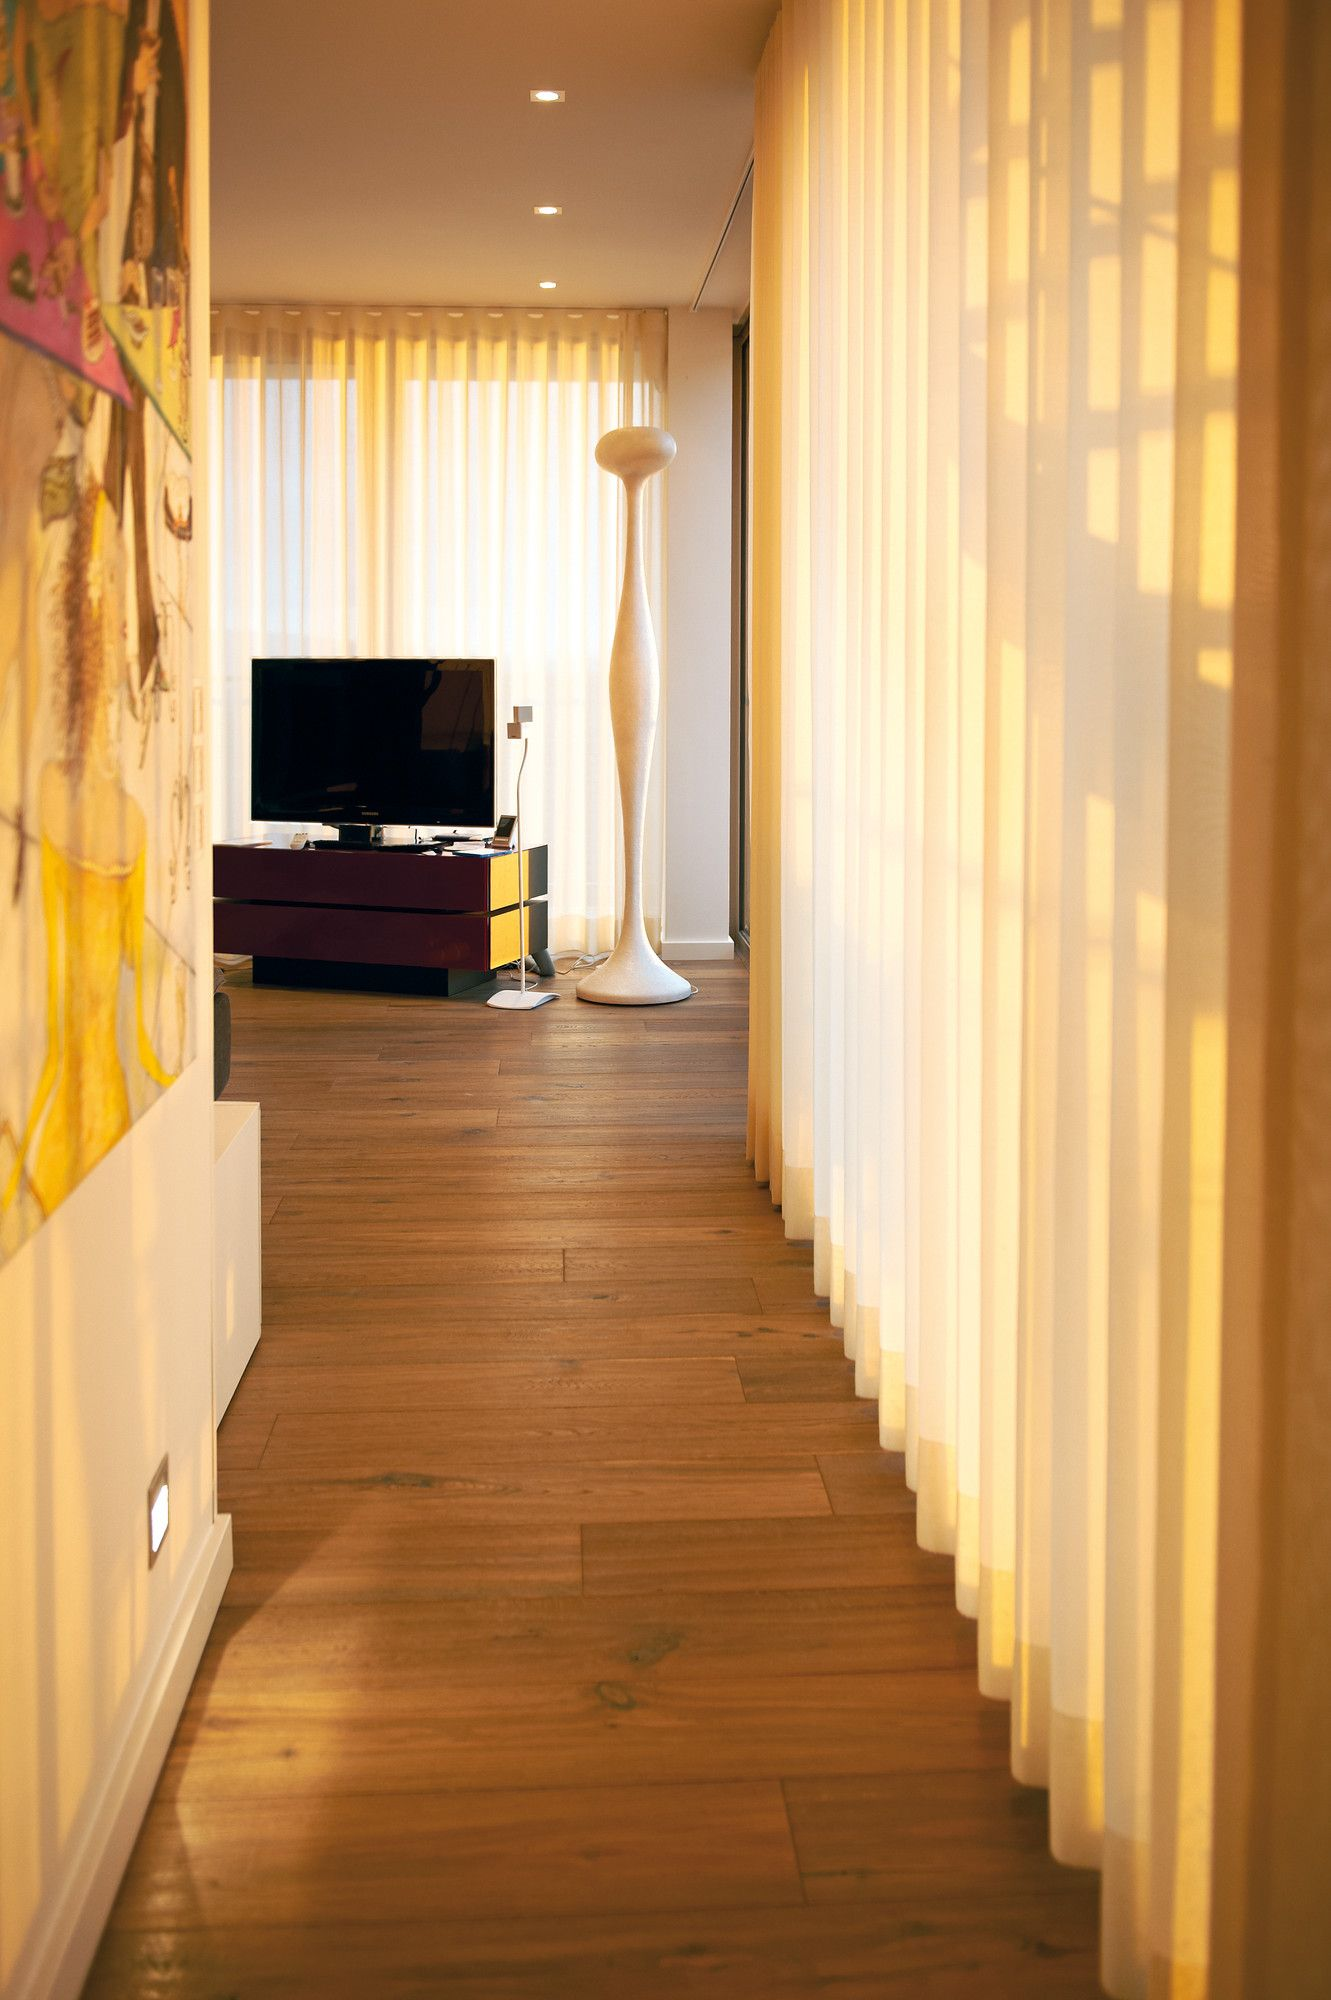 Bedroom curtain track - 5400 Electric Curtain Track System With Wave In A Residential Penthouse In Germany